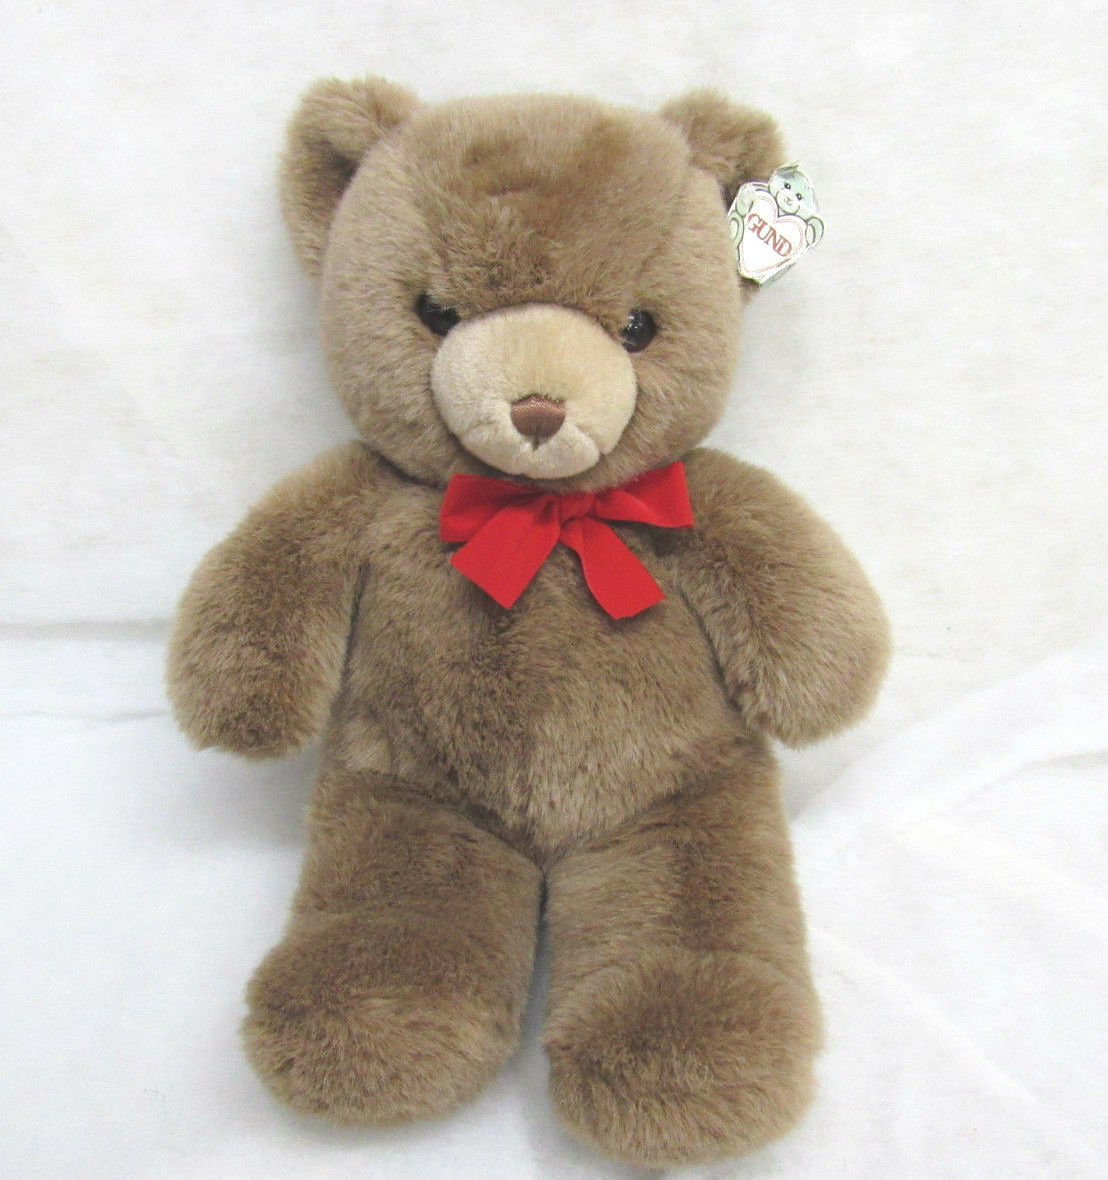 VTG LARGE GUND GUND BROWN TEDDY BEAR PLUSH RED BOW